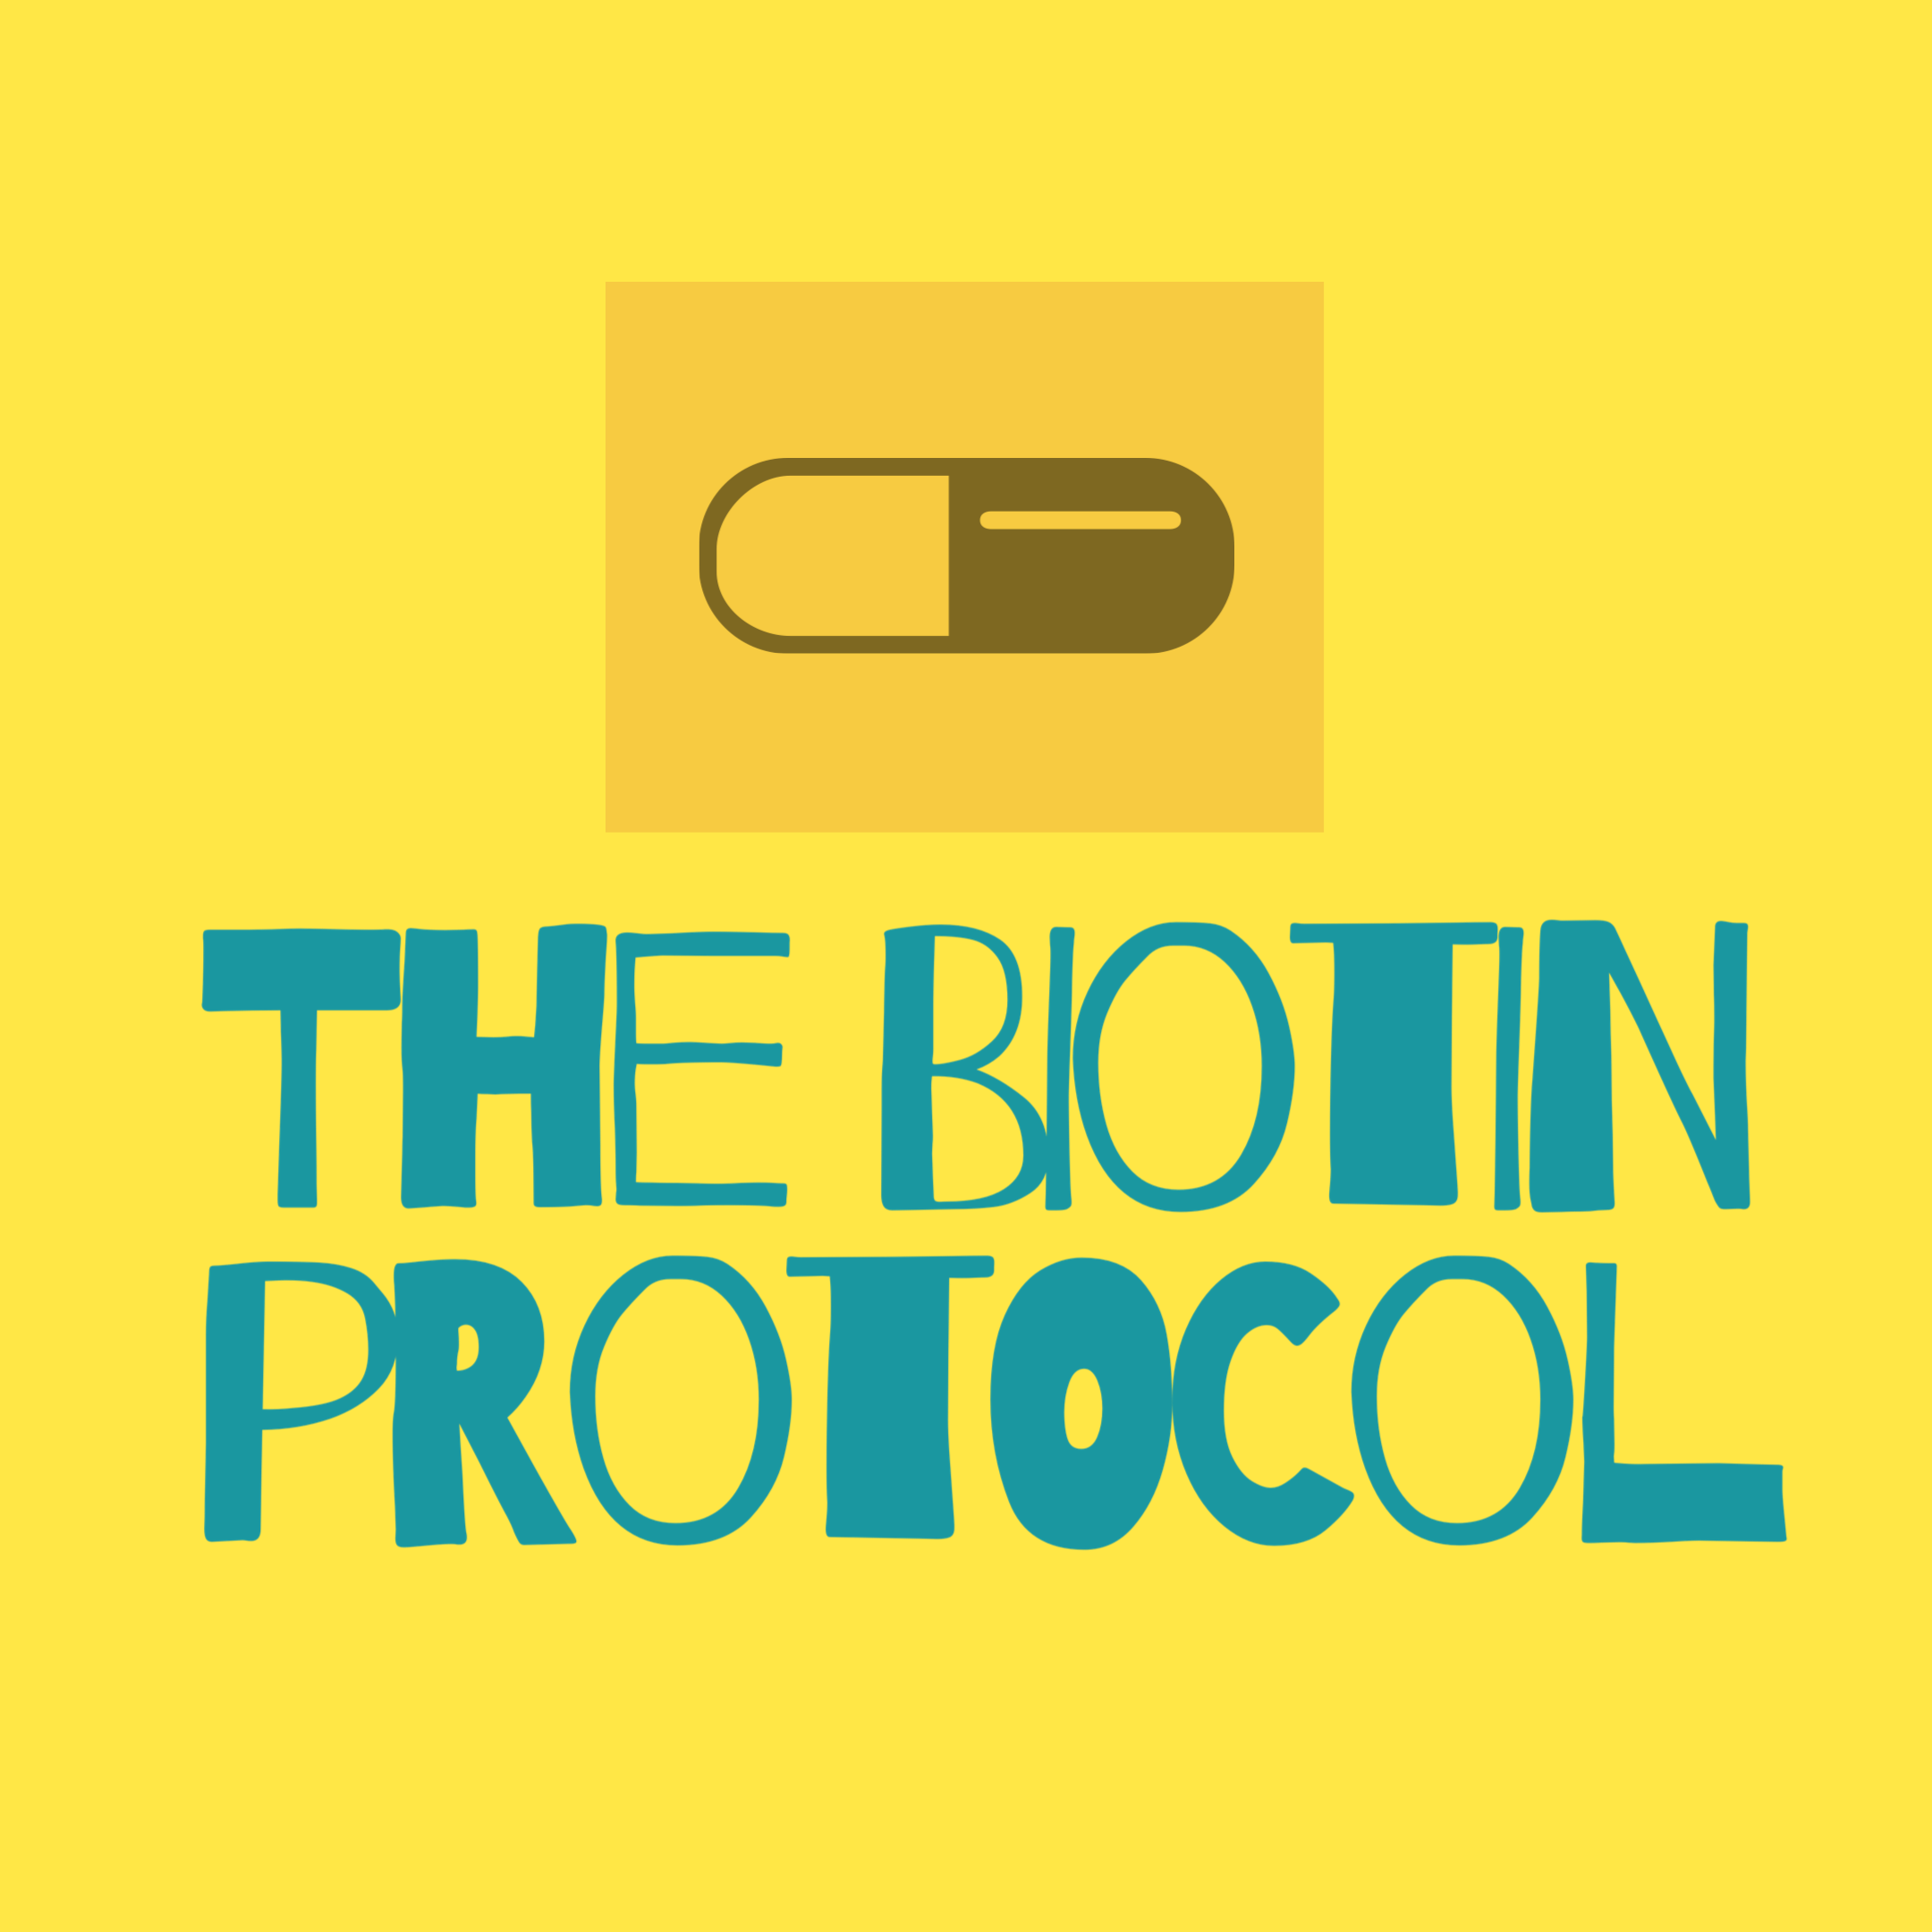 the biotin protocol writen in blue on yellow bacground